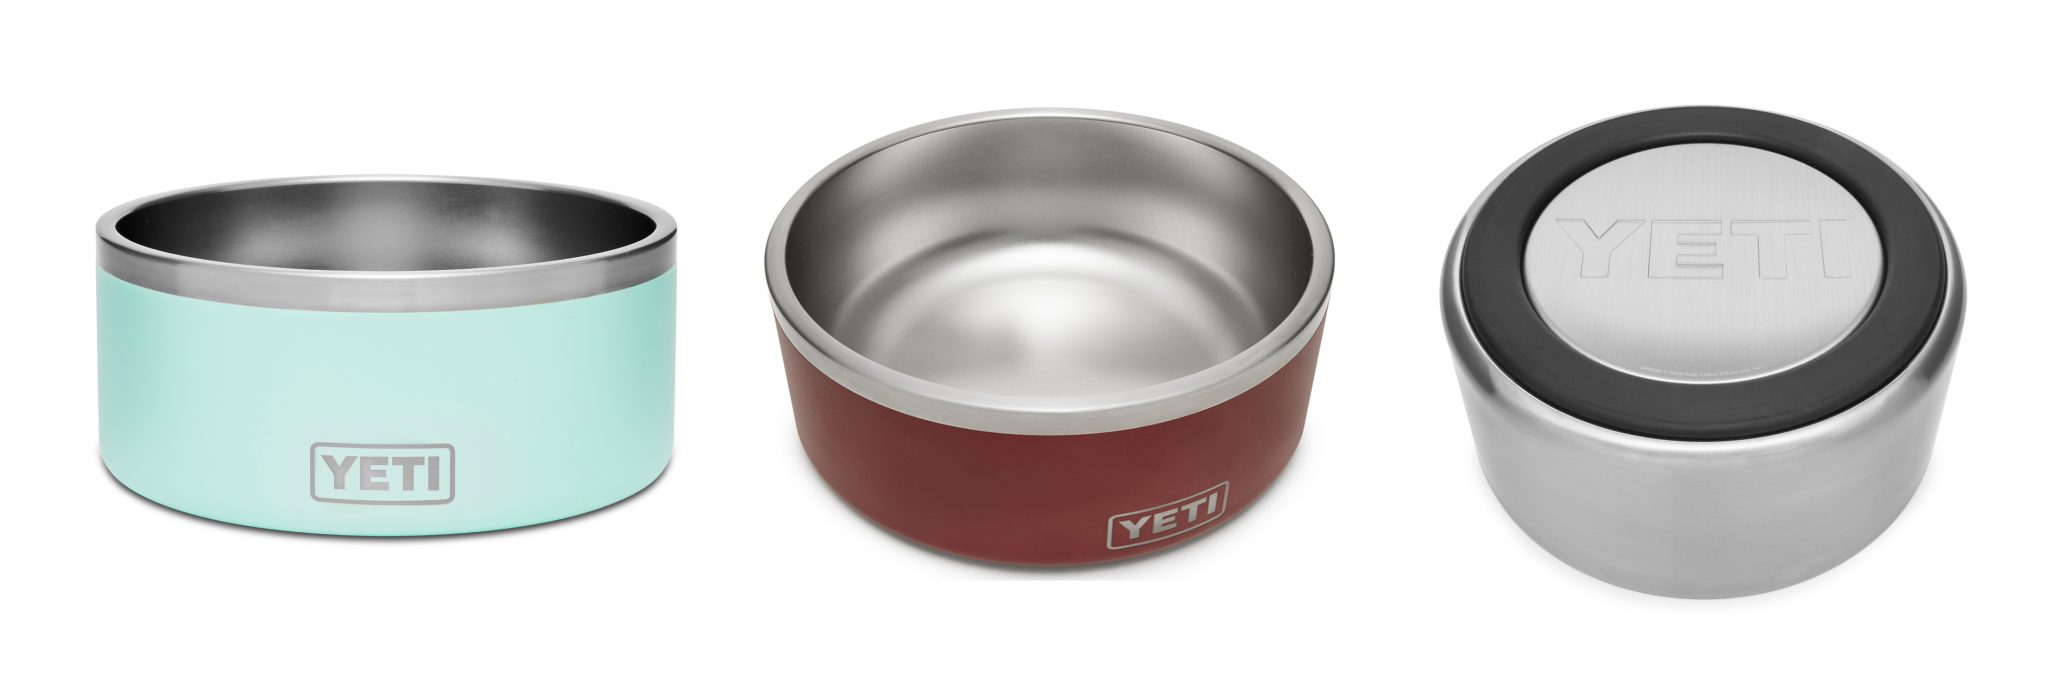 The YETI Boomer dog bowl